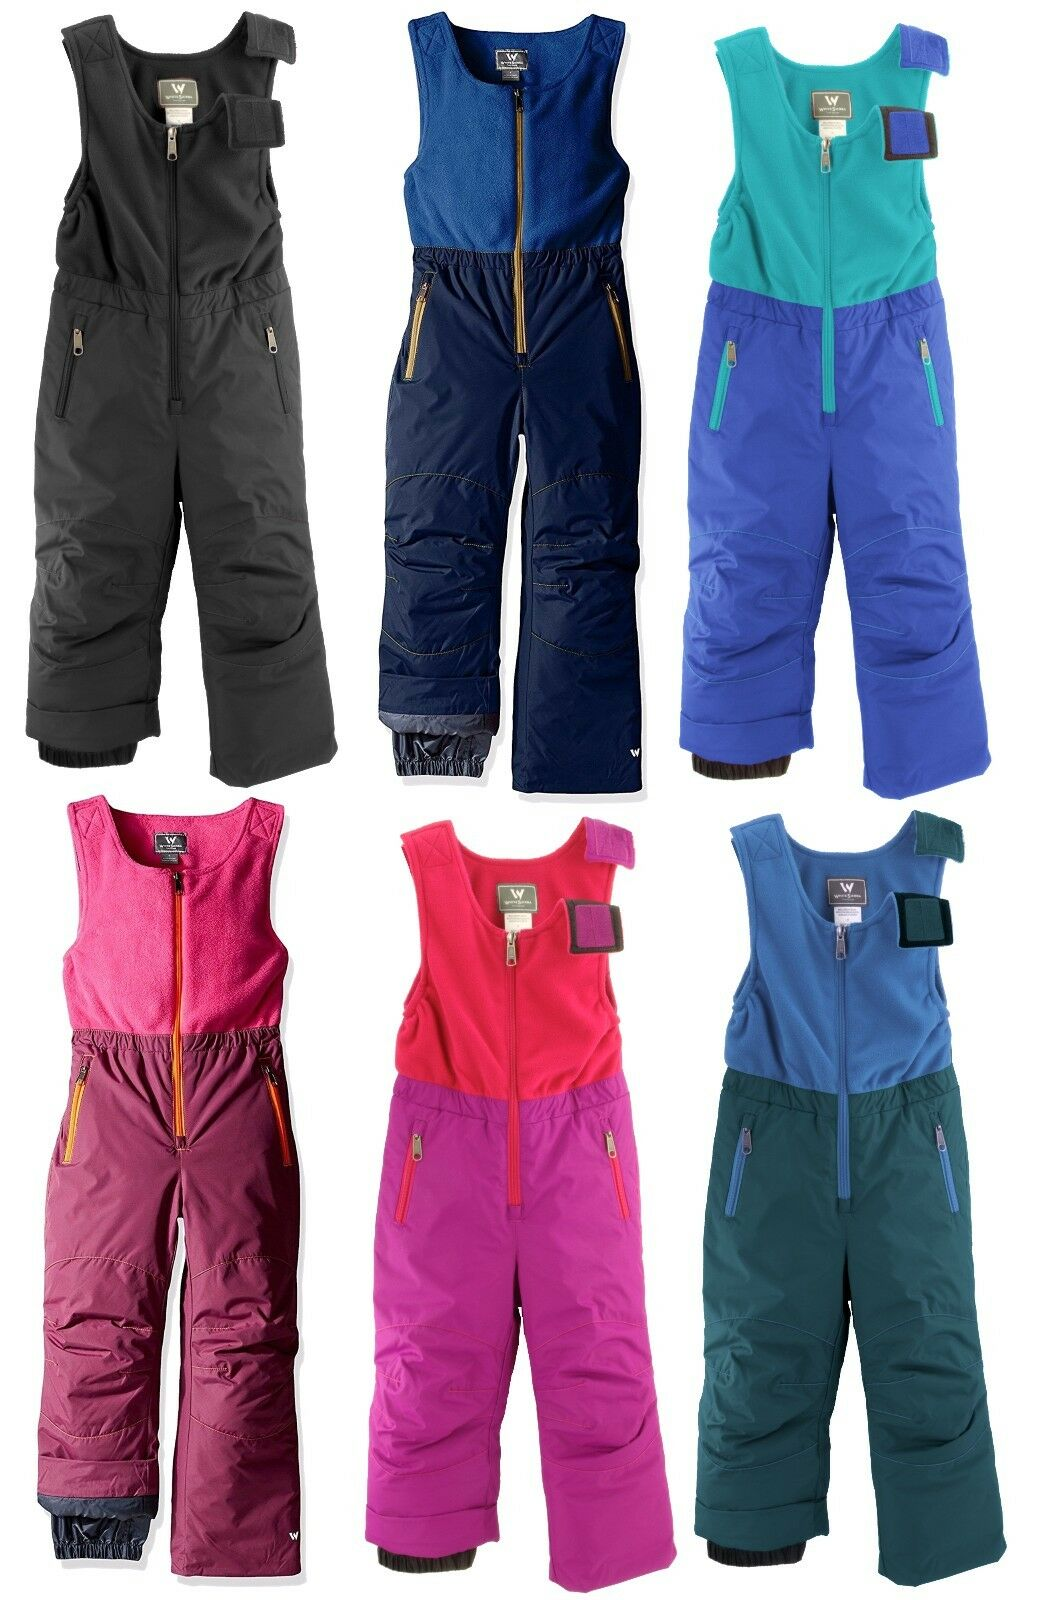 WHITE SIERRA T9217T GIRLS BOYS TODDLER II BIB PANT SKI SNOW